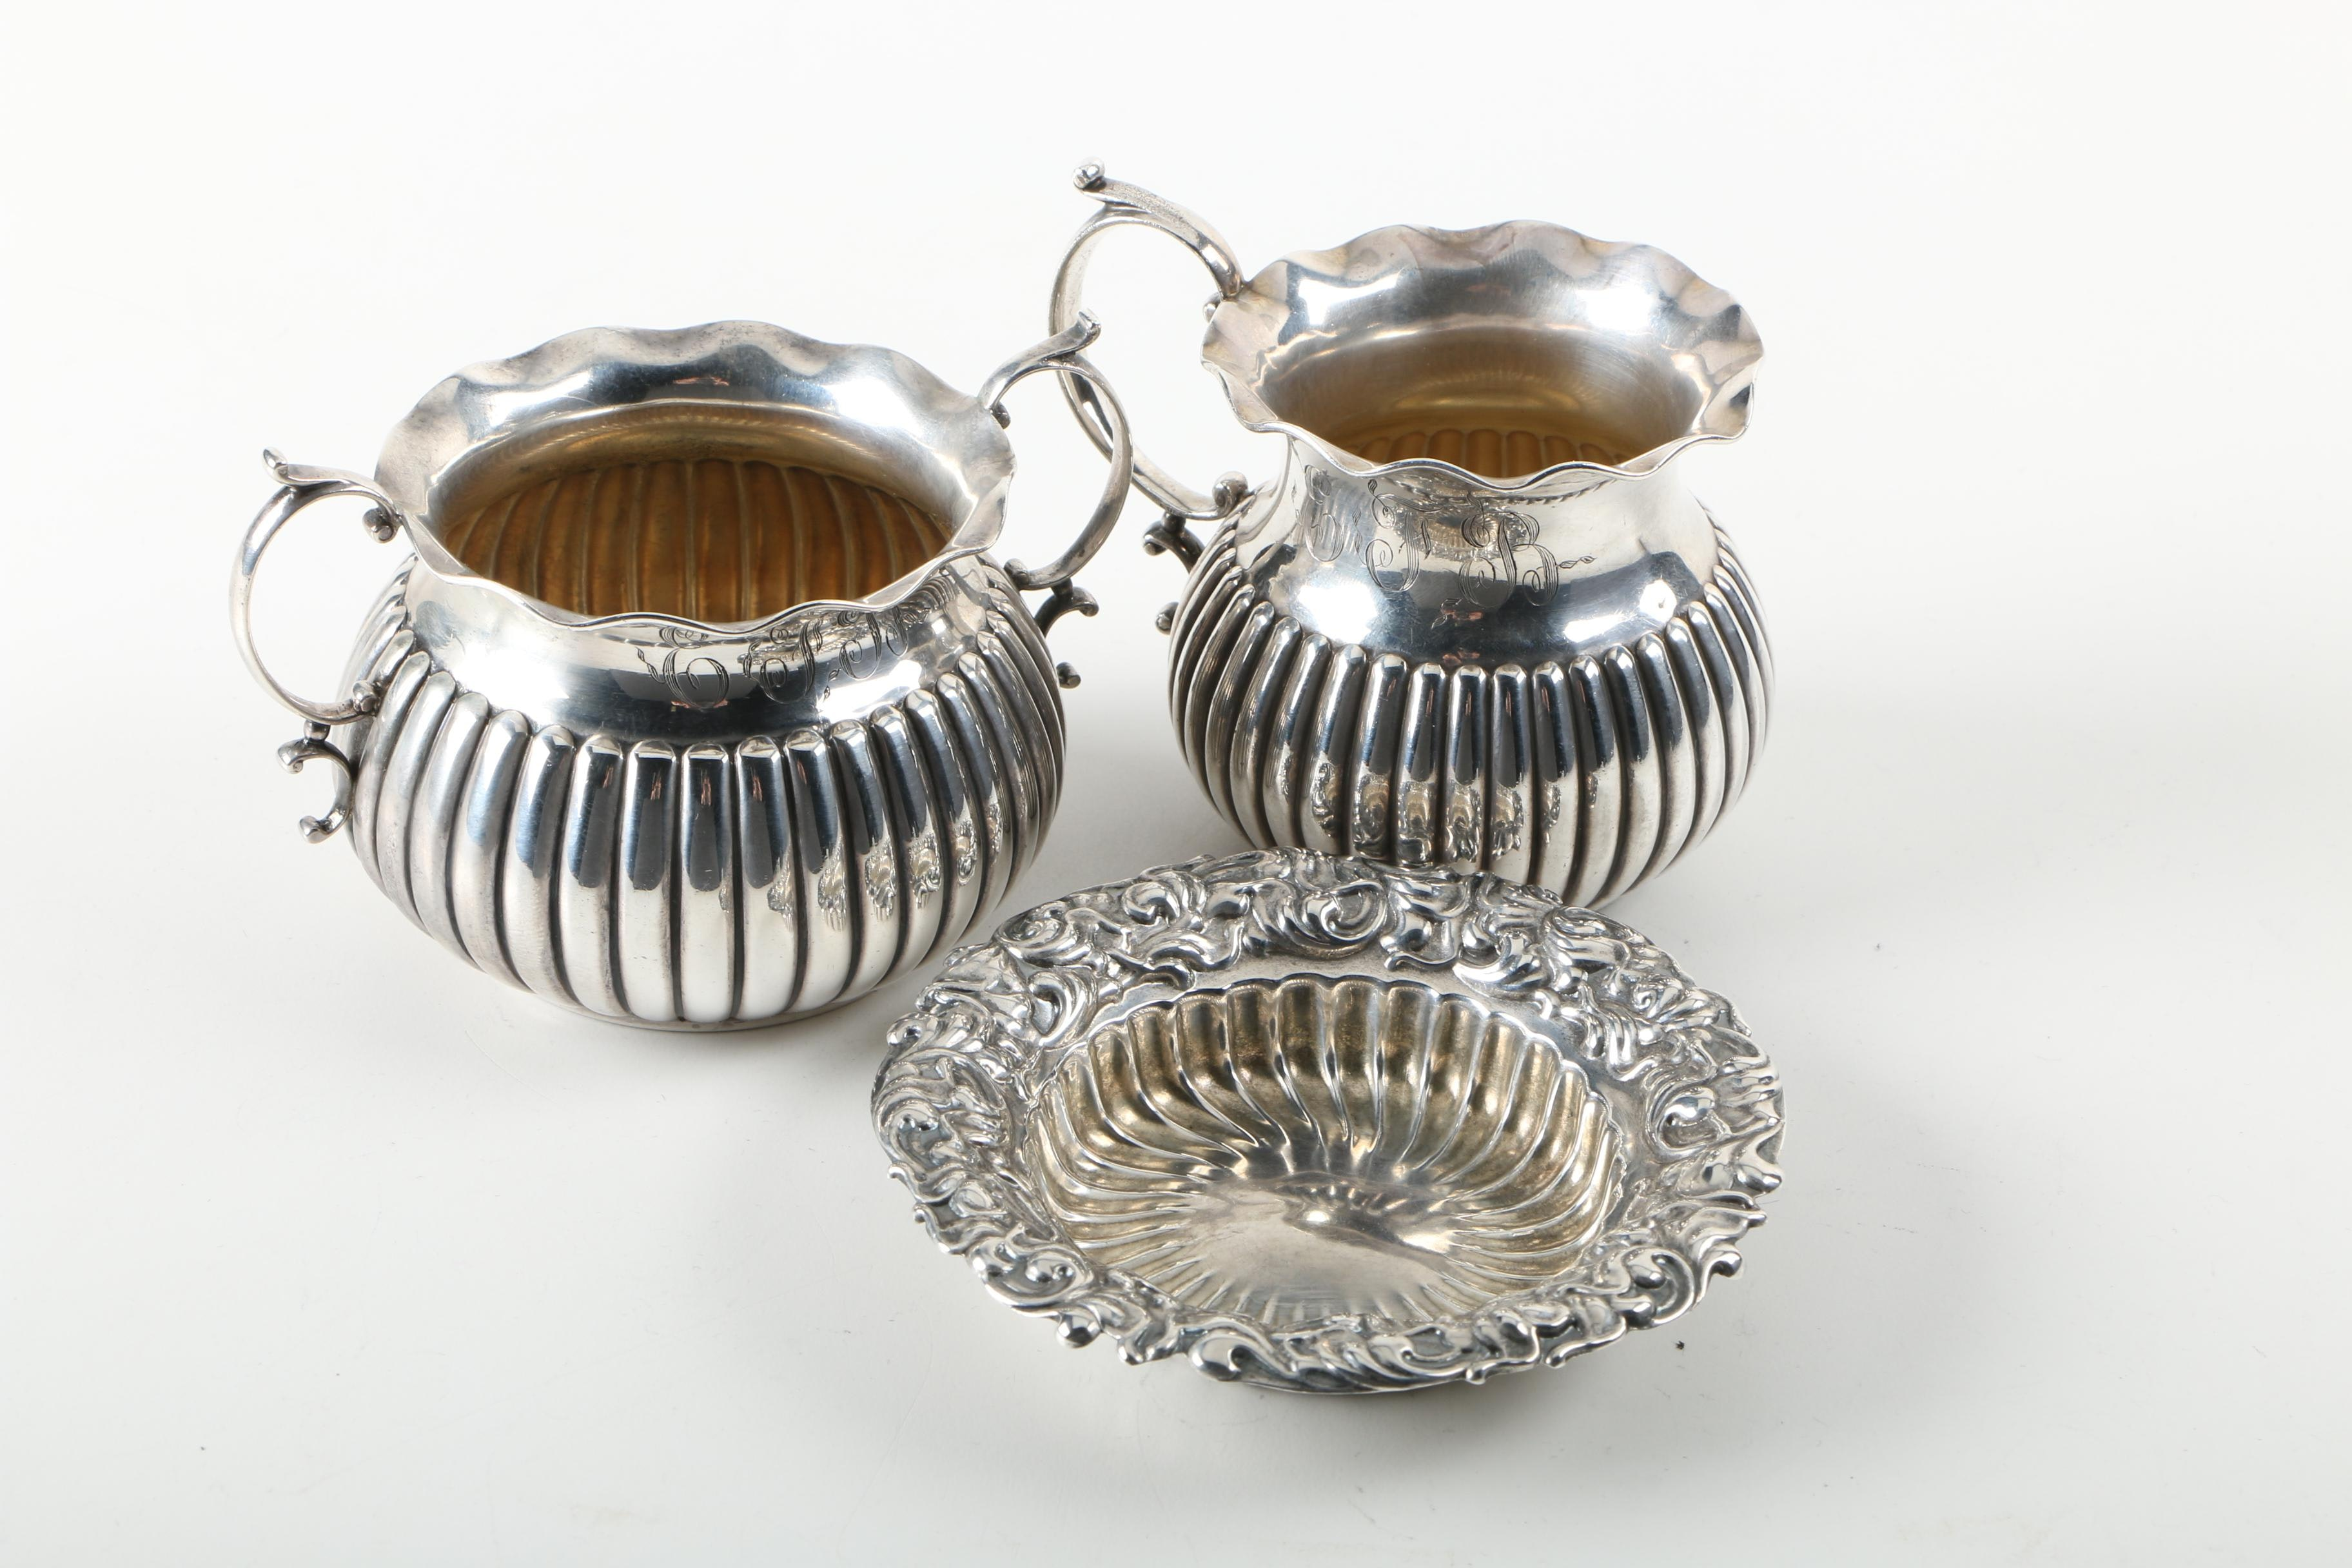 Whiting Mfg. Co. Sterling Silver Creamer, Sugar Bowl, and Dish